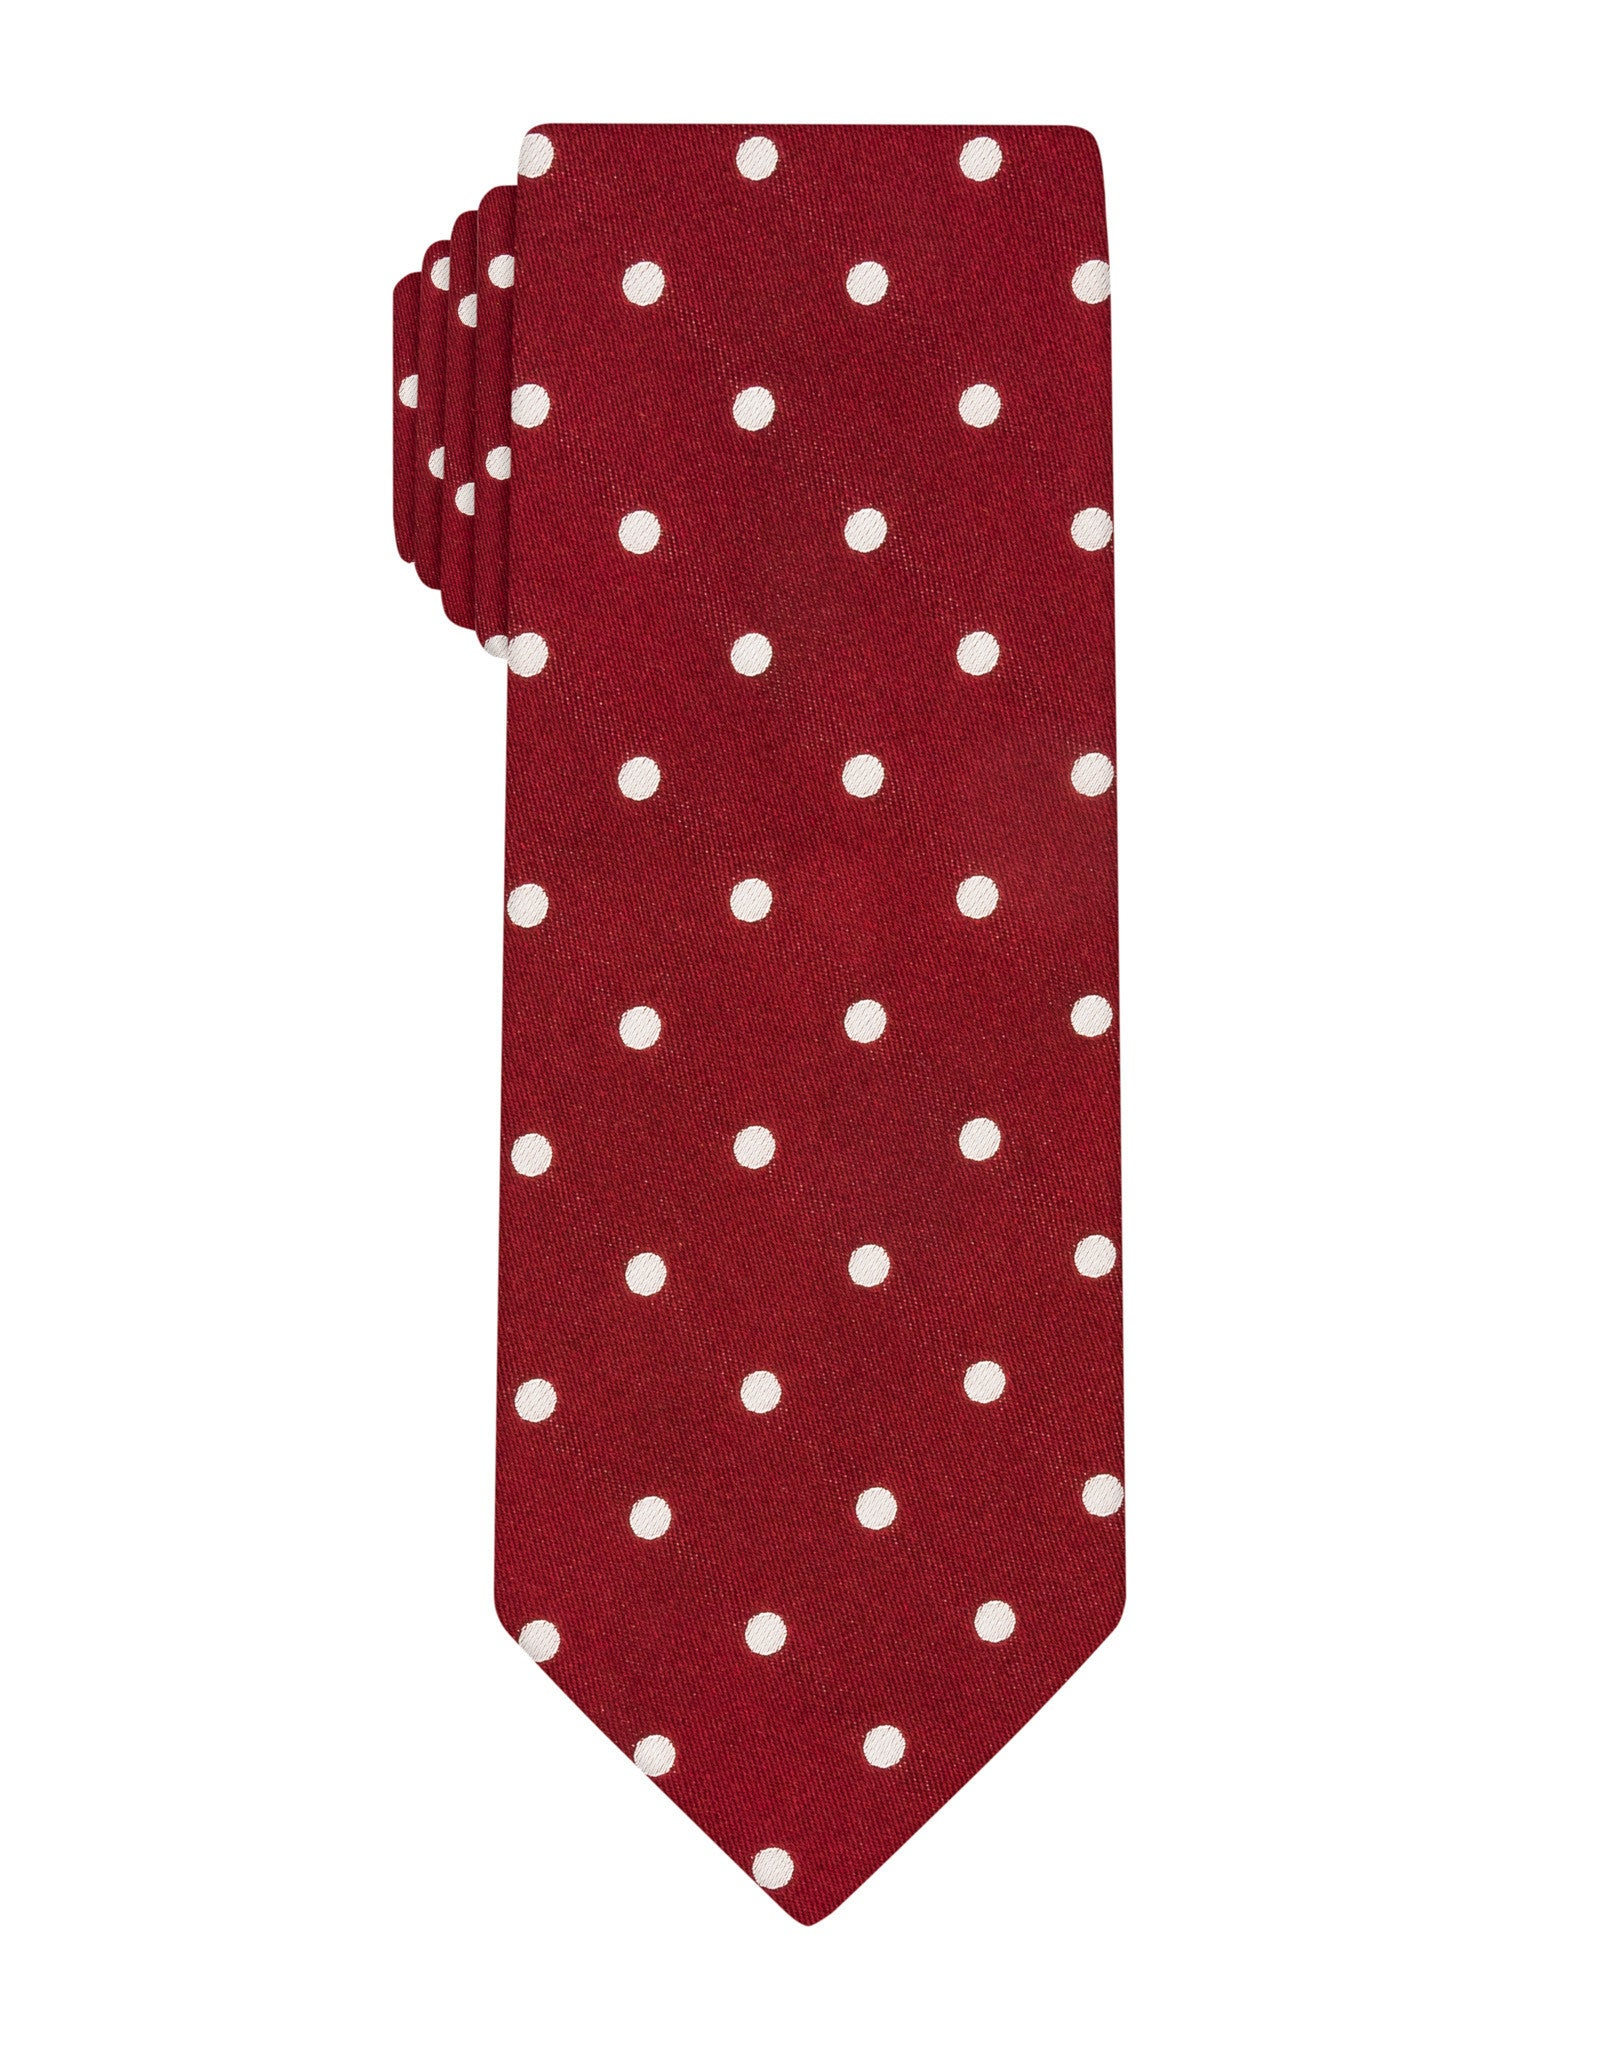 Burgundy Satin Polka Dot Tie